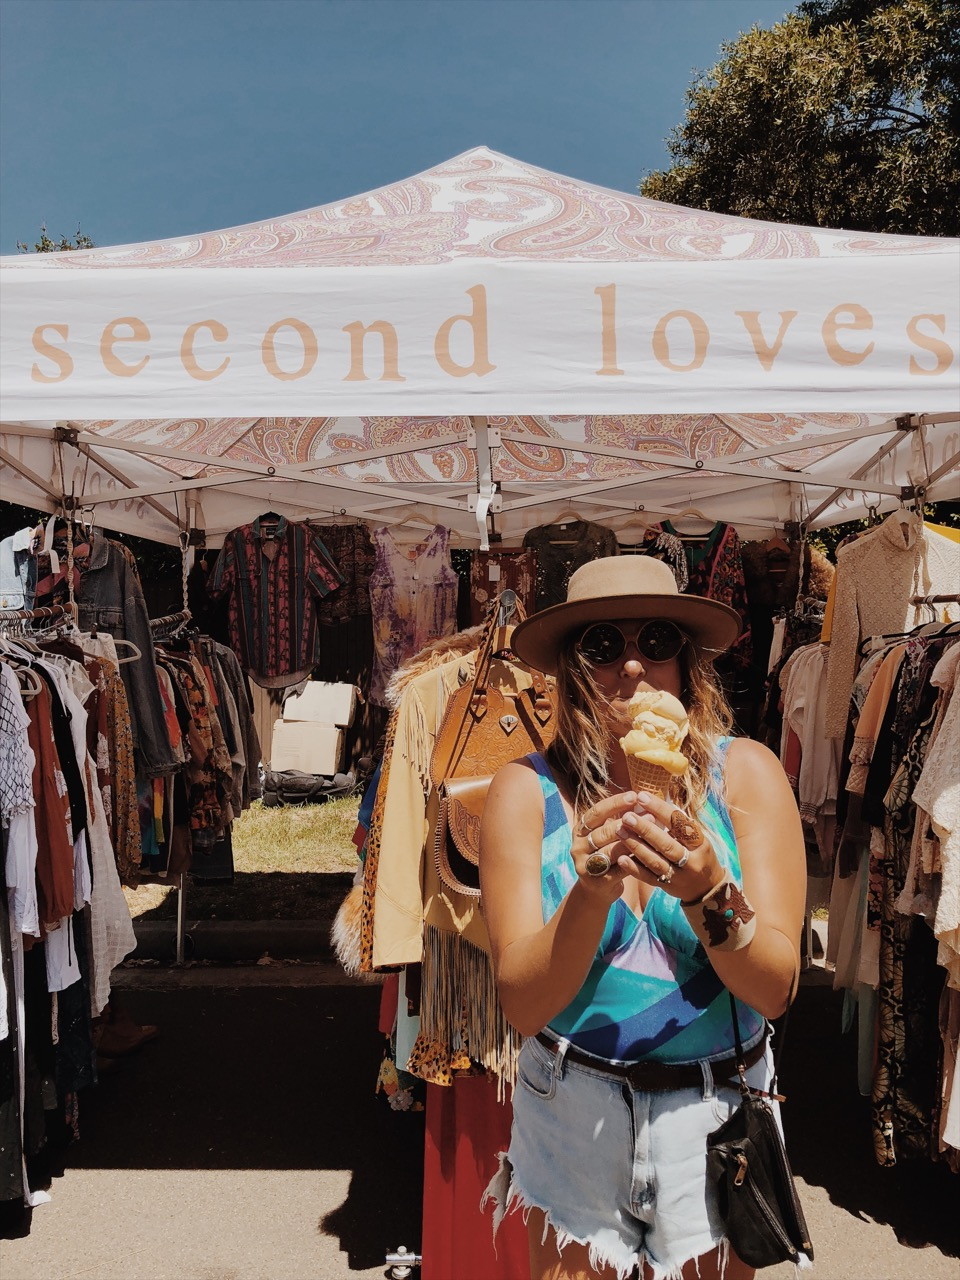 Second Loves Vintage Byron Bay https://www.secondlovesvintage.com